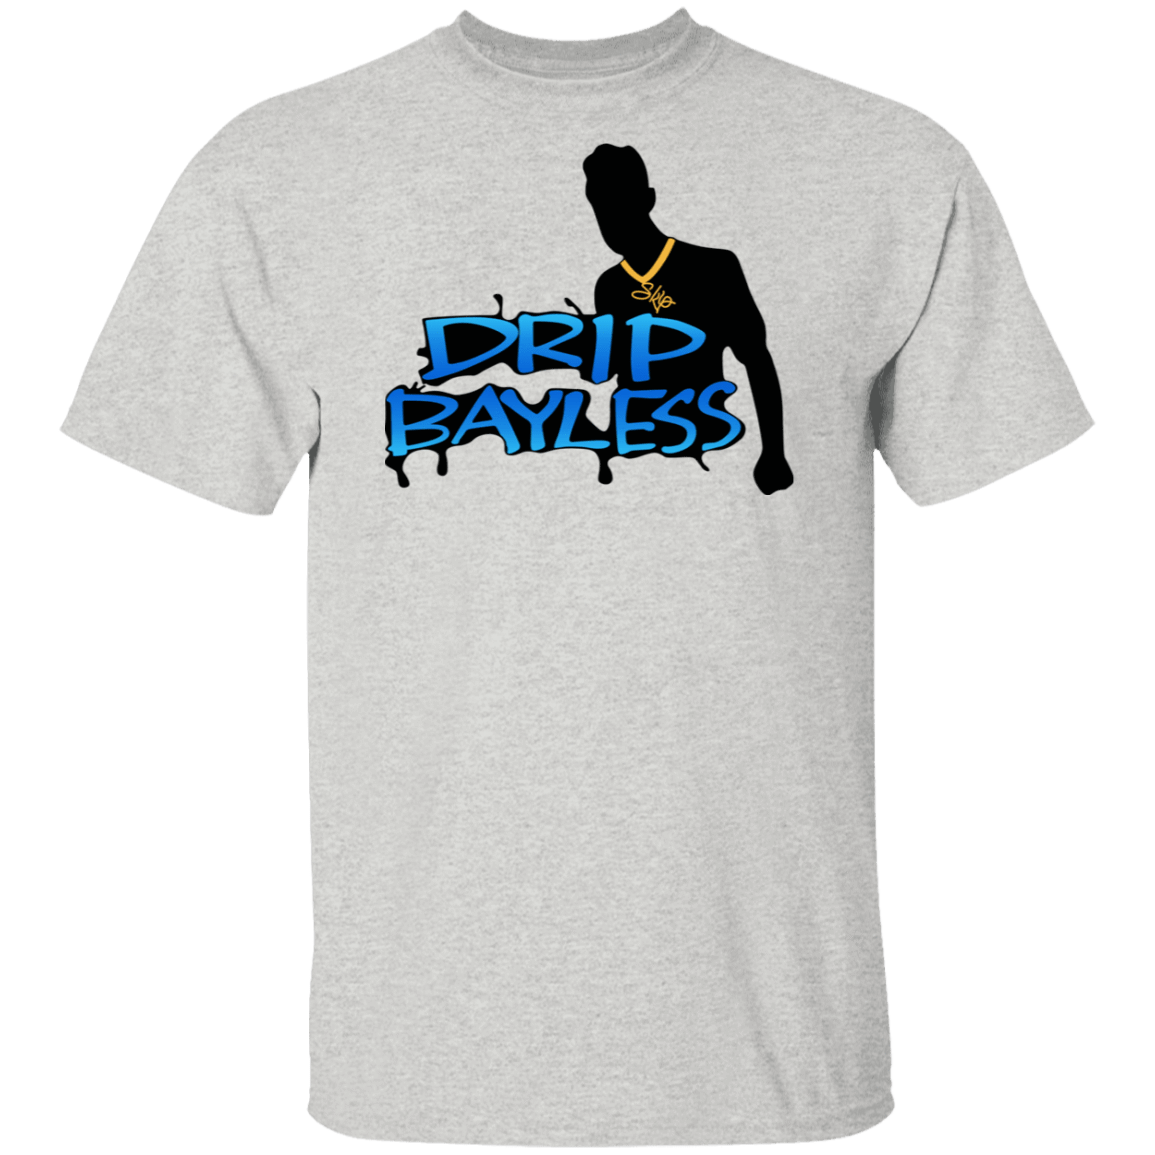 Snoop Dogg Drip Bayless T-Shirts, Hoodies, Tank 1049-9952-80393820-48184 - Tee Ript